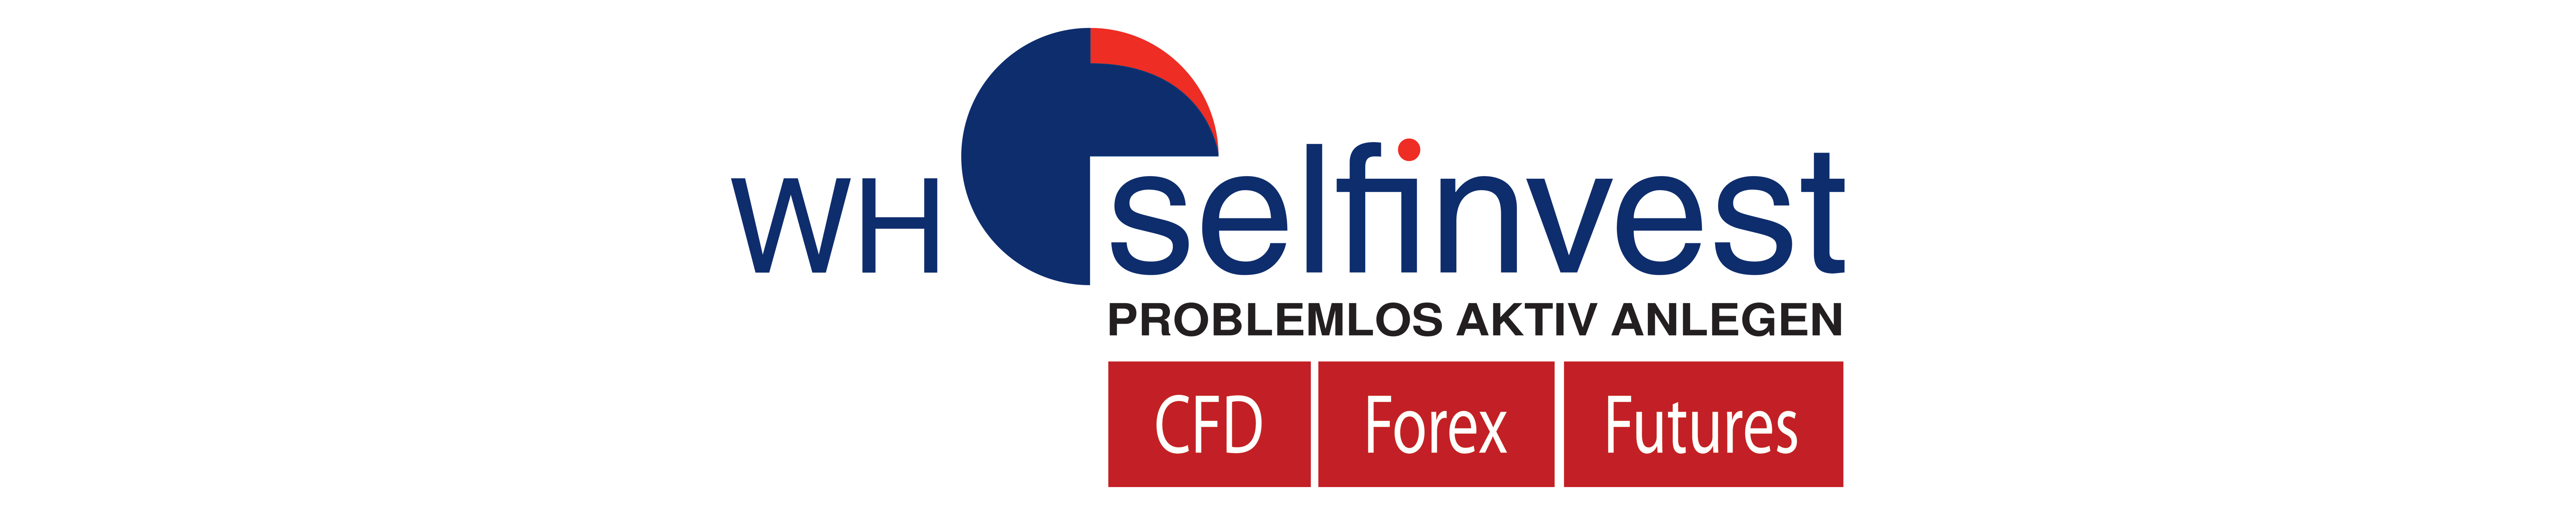 Renko chart software section features a collection of handpicked and curated reviews of the very best Renko charting solutions. We regularly update this section with new charting and trading applications which allow for Renko charts either as a native charting platform or as an add-on.